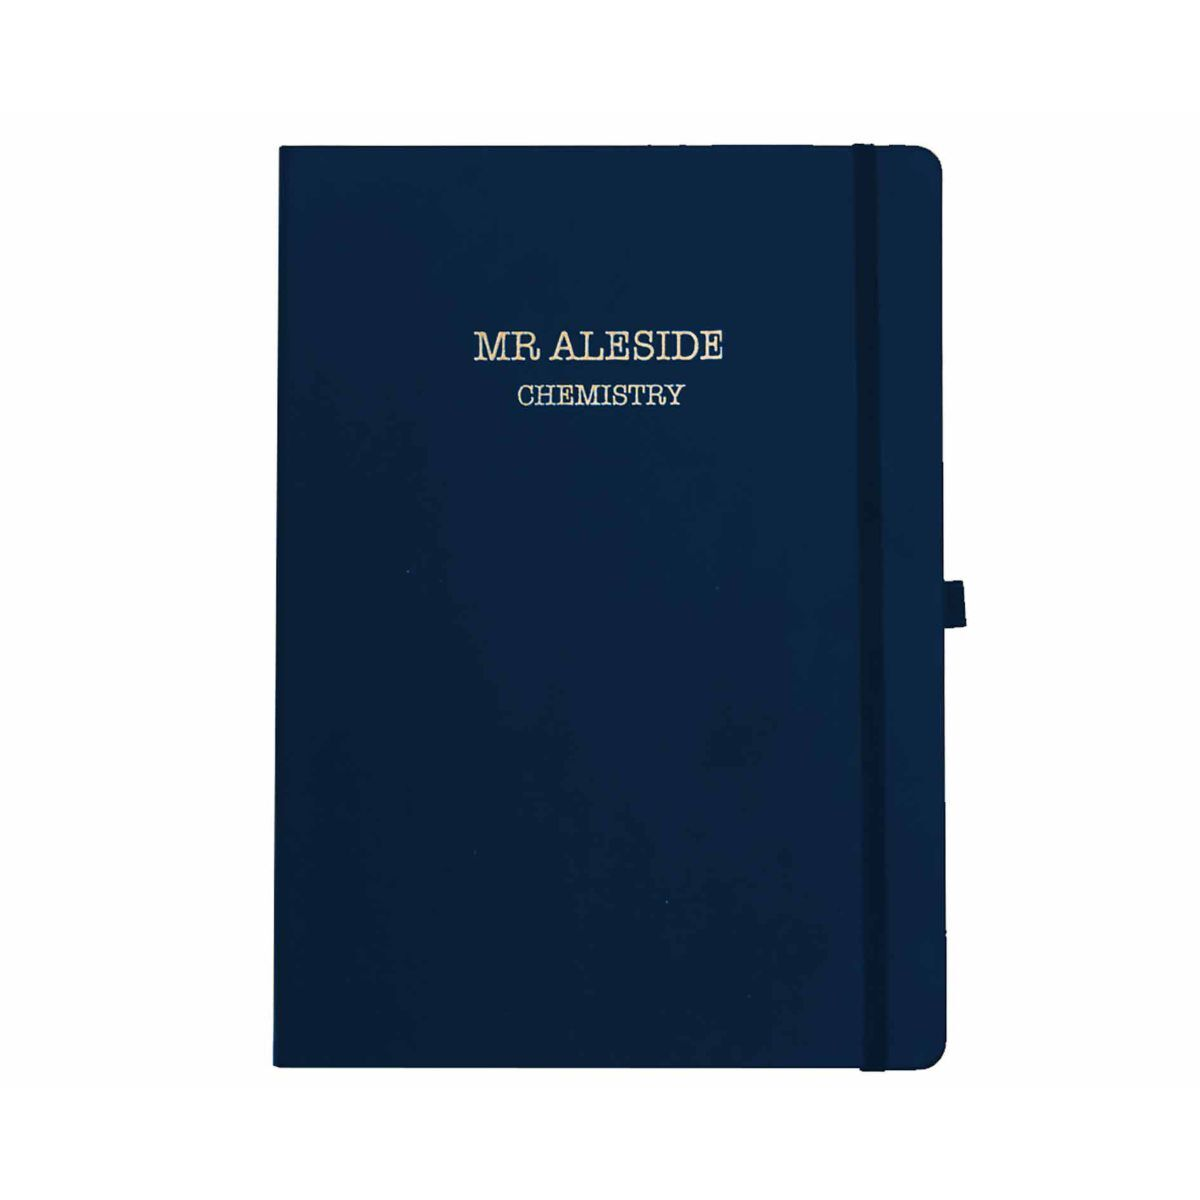 Ryman Personalised Soft Cover Large Notebook Name and Subject in Copper Foil